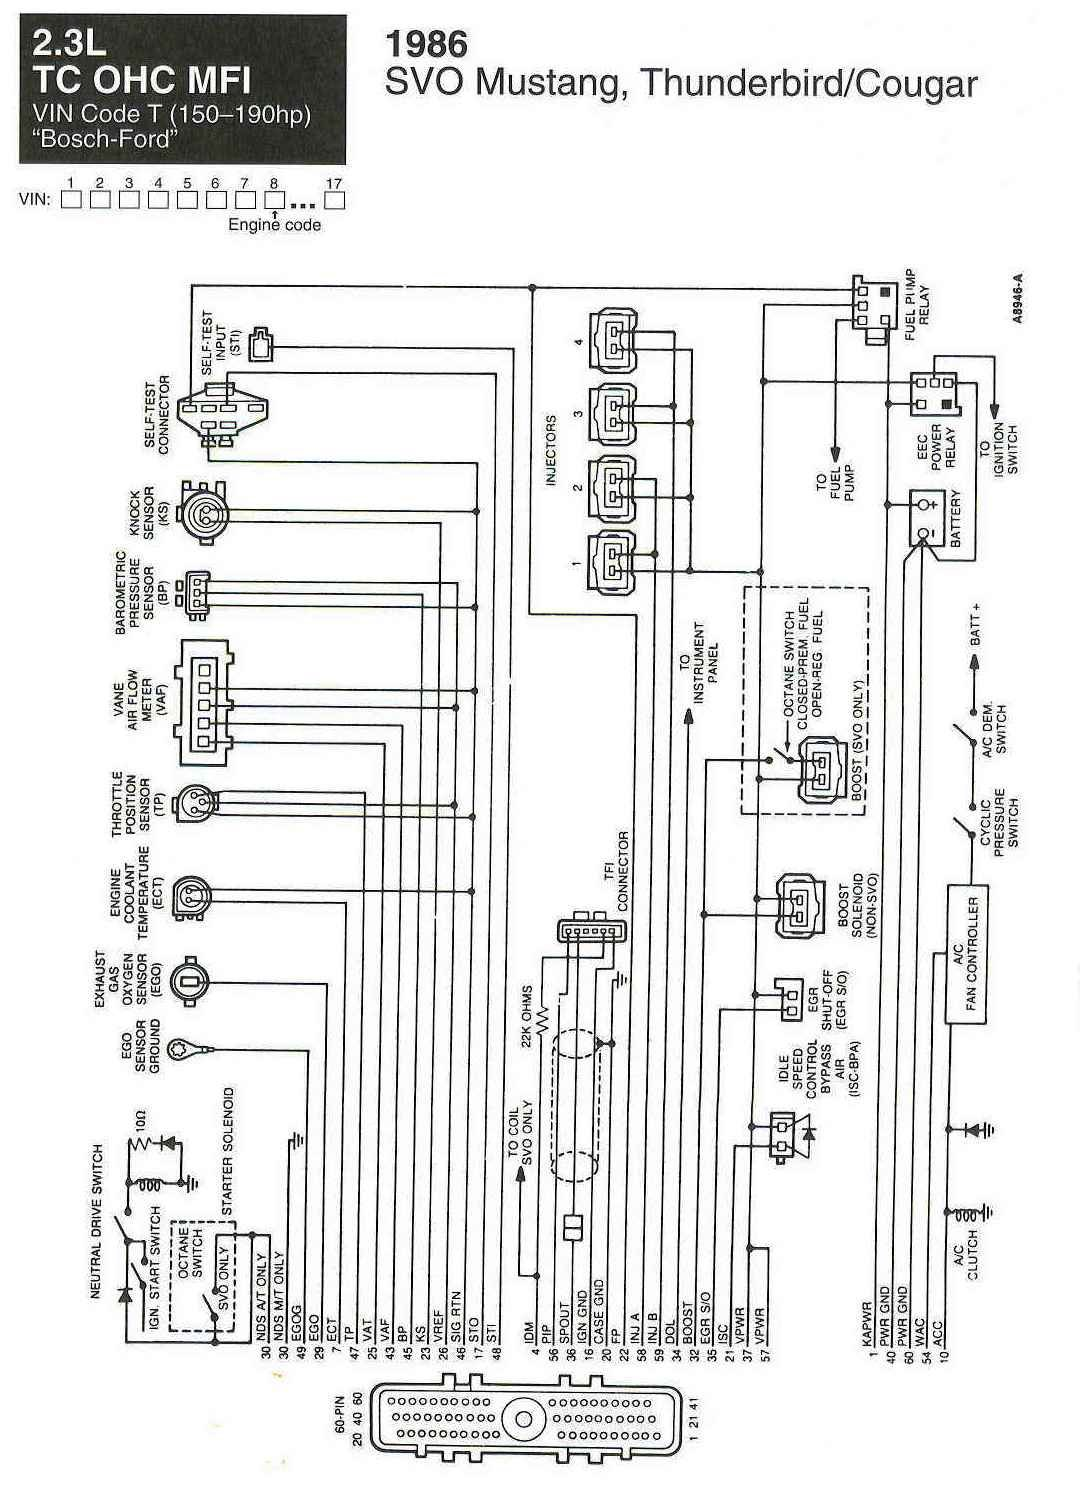 558233d1490500672 86 svo boost control premium switch wiring pe pinout 86 svo boost control premium switch wiring ford mustang forum 1989 Mustang Wiring Diagram at gsmx.co